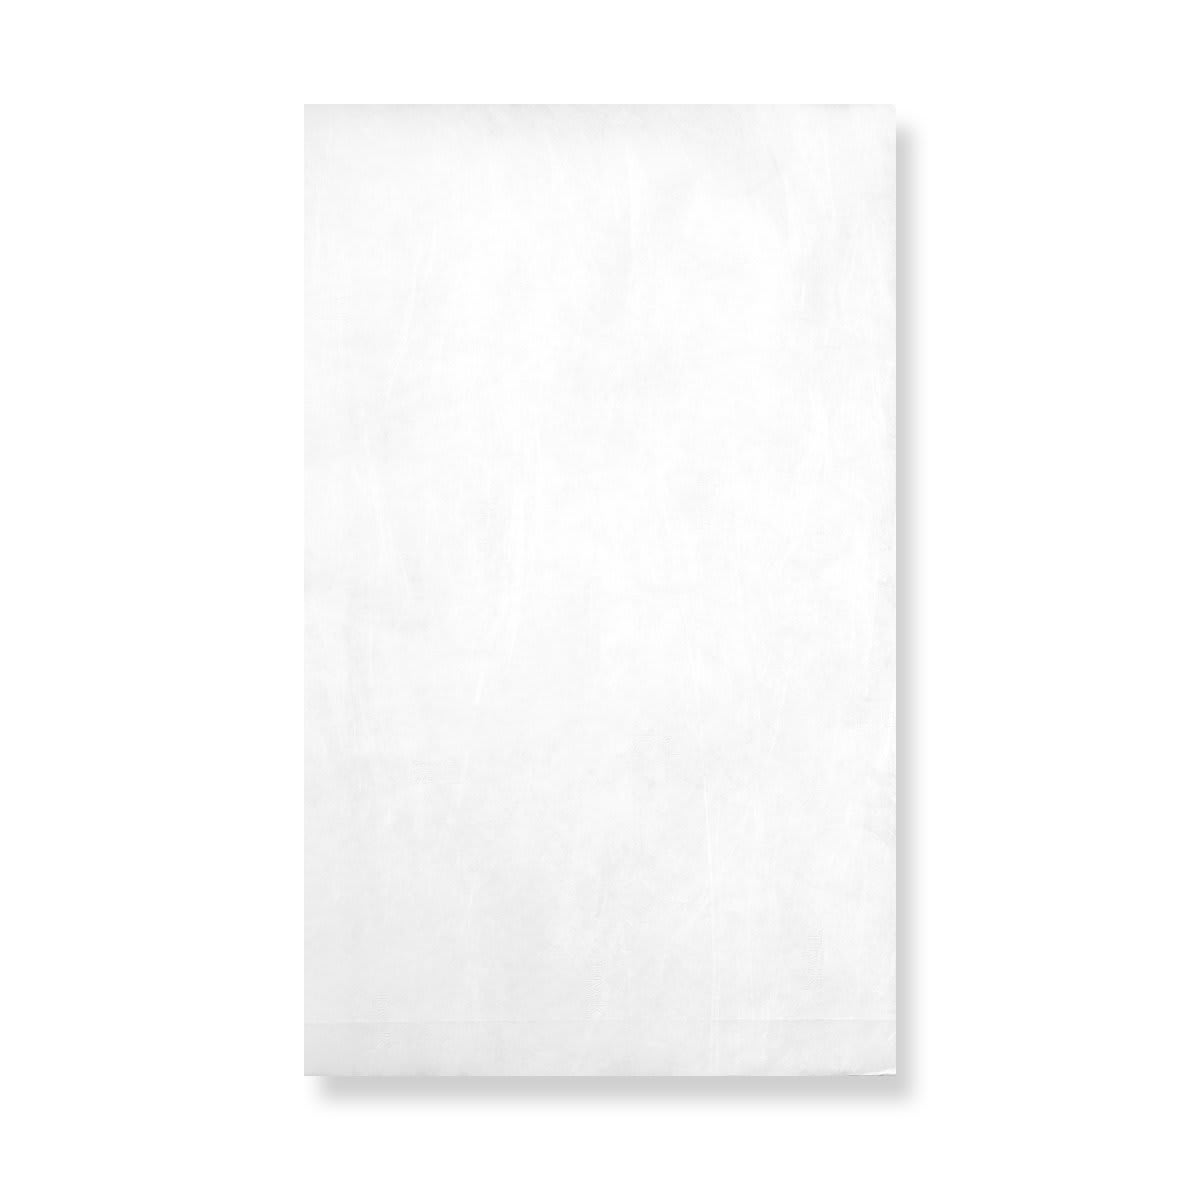 381 x 250mm WHITE TYVEK GUSSET ENVELOPES